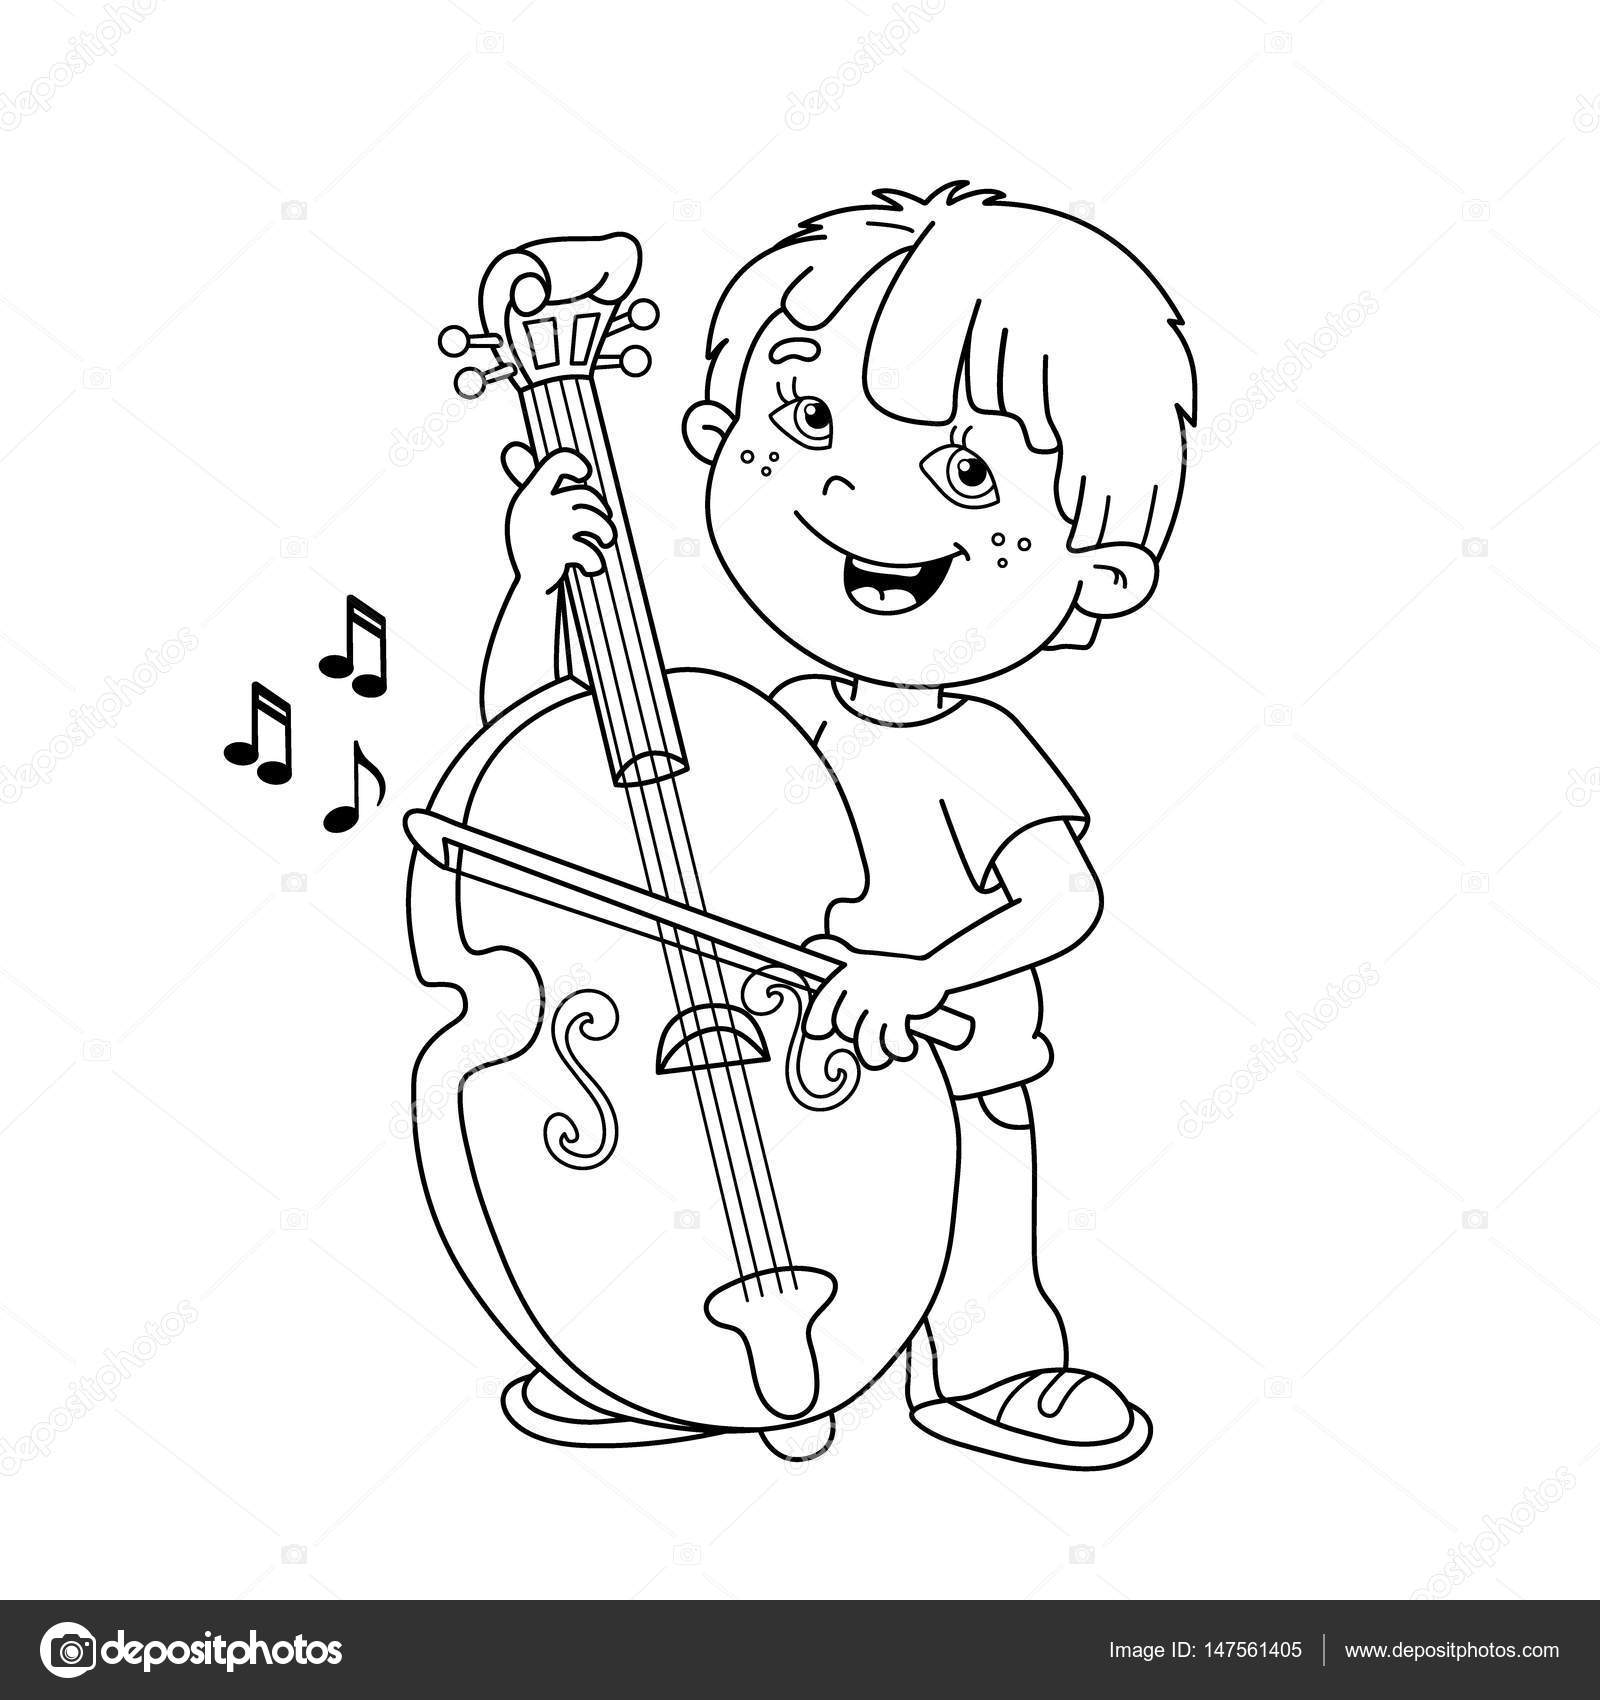 coloring page outline of cartoon boy playing the cello